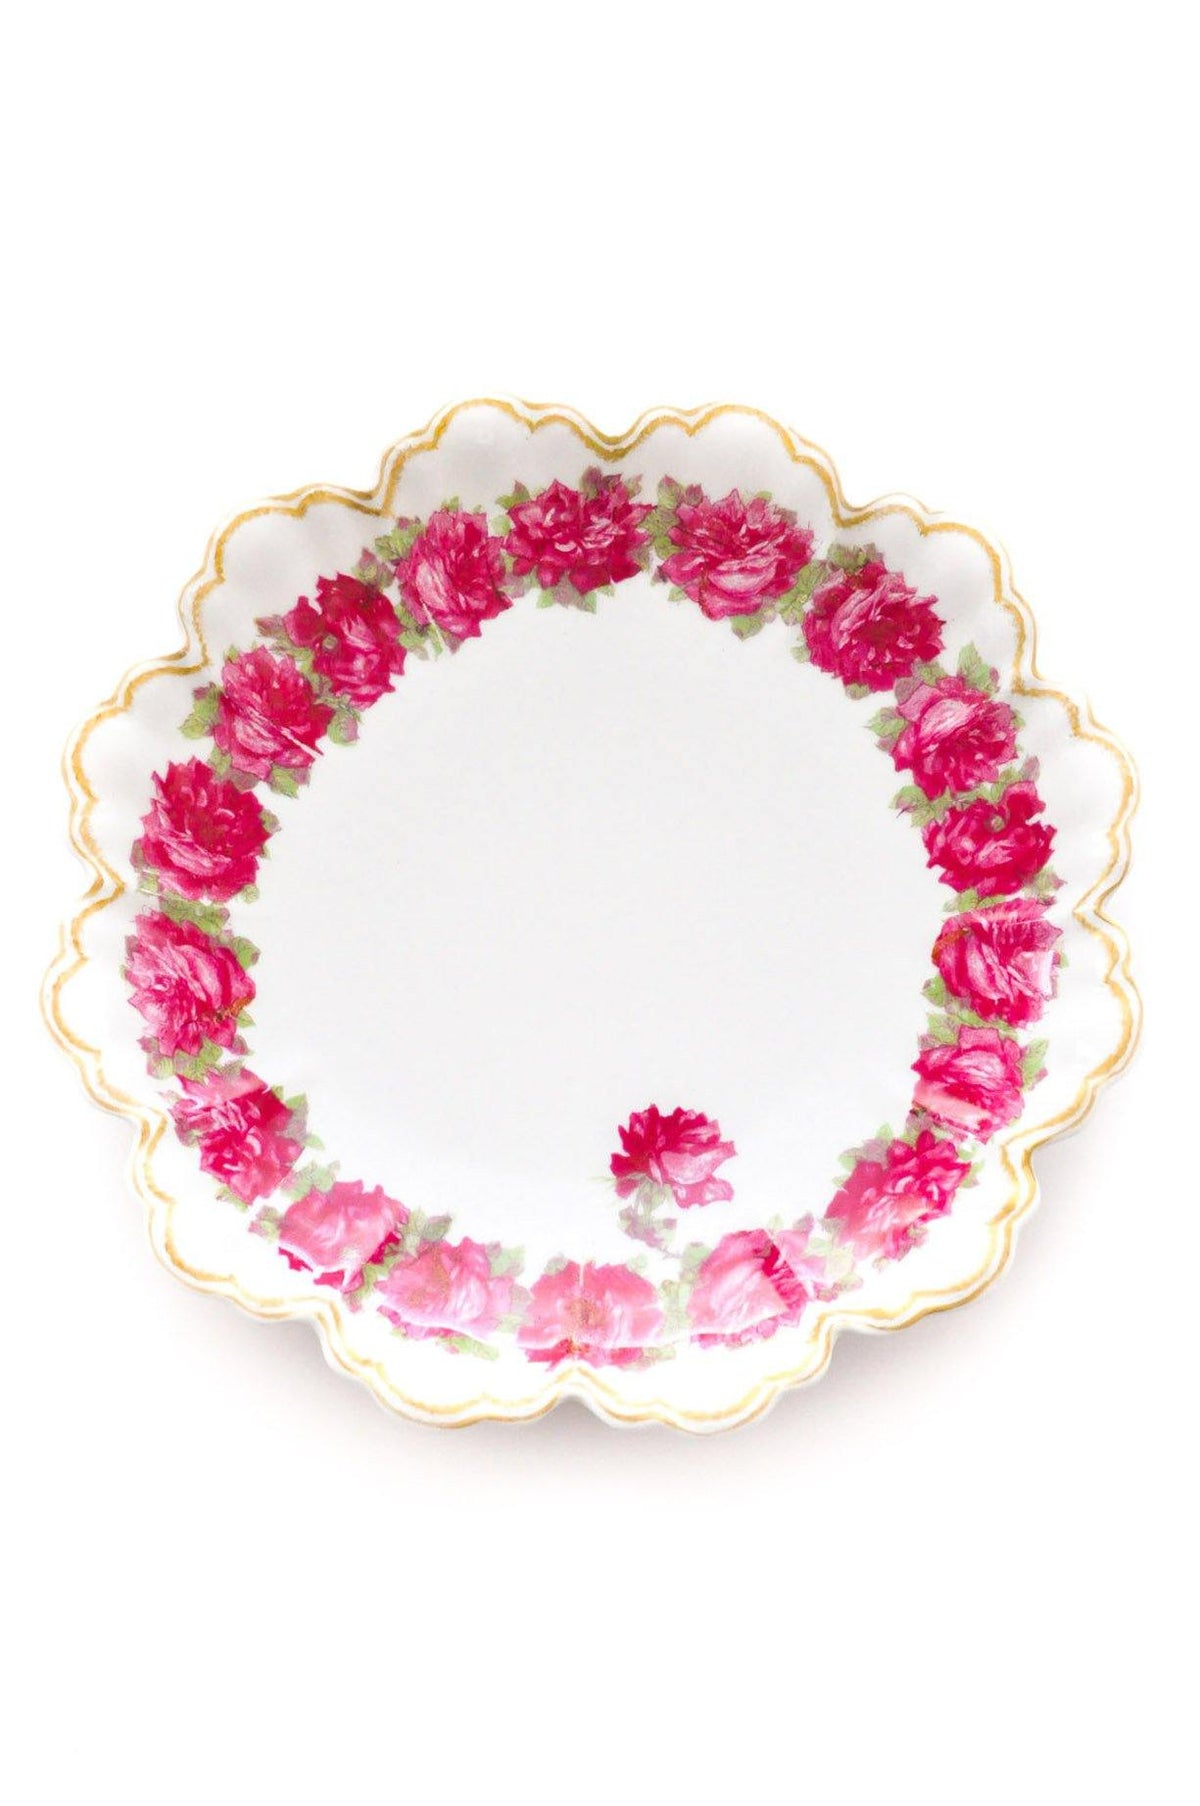 Vintage floral jewelry dish from Sweet & Spark.